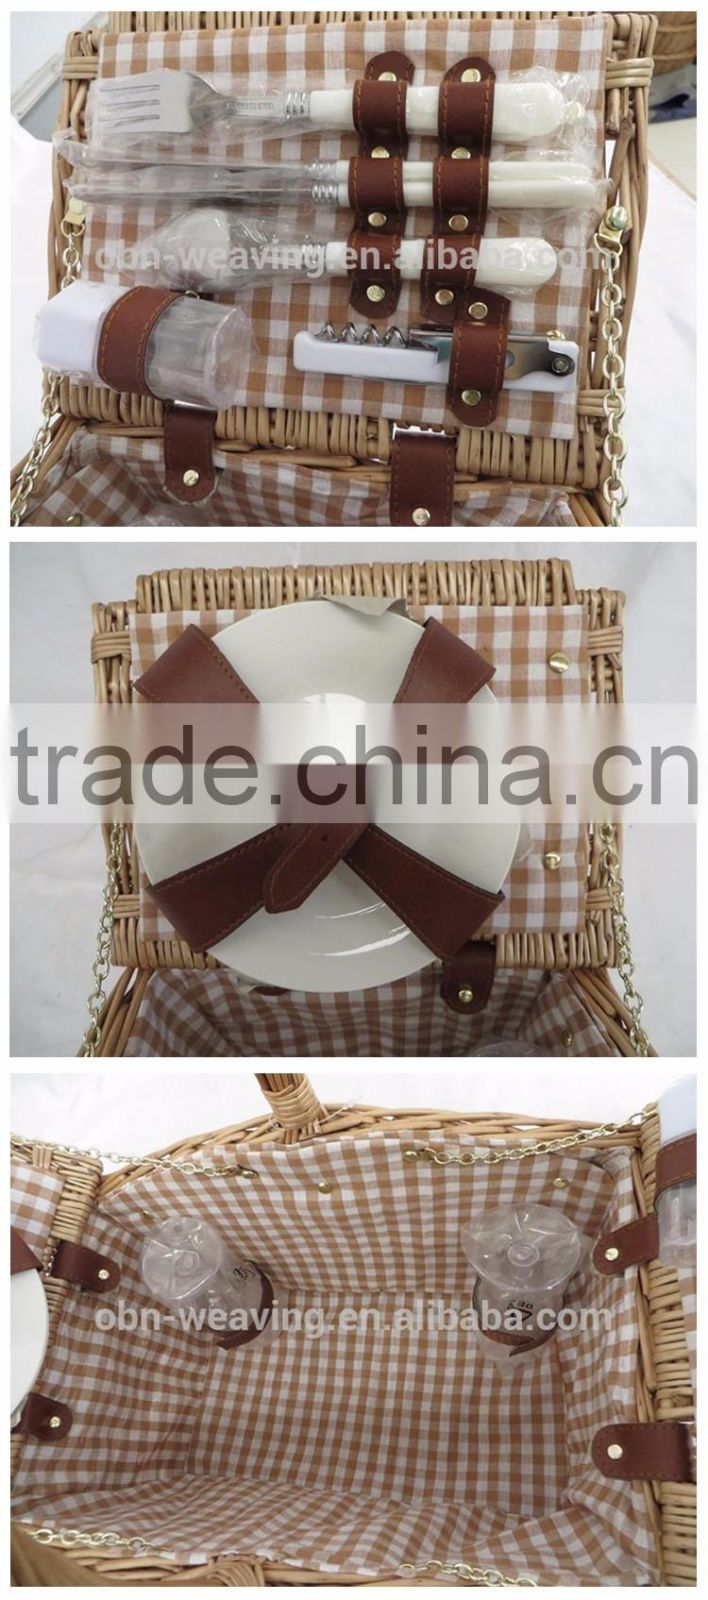 China Wholesale 2 Person Vintage Hanging Wicker Picnic Basket Set with Cutlery